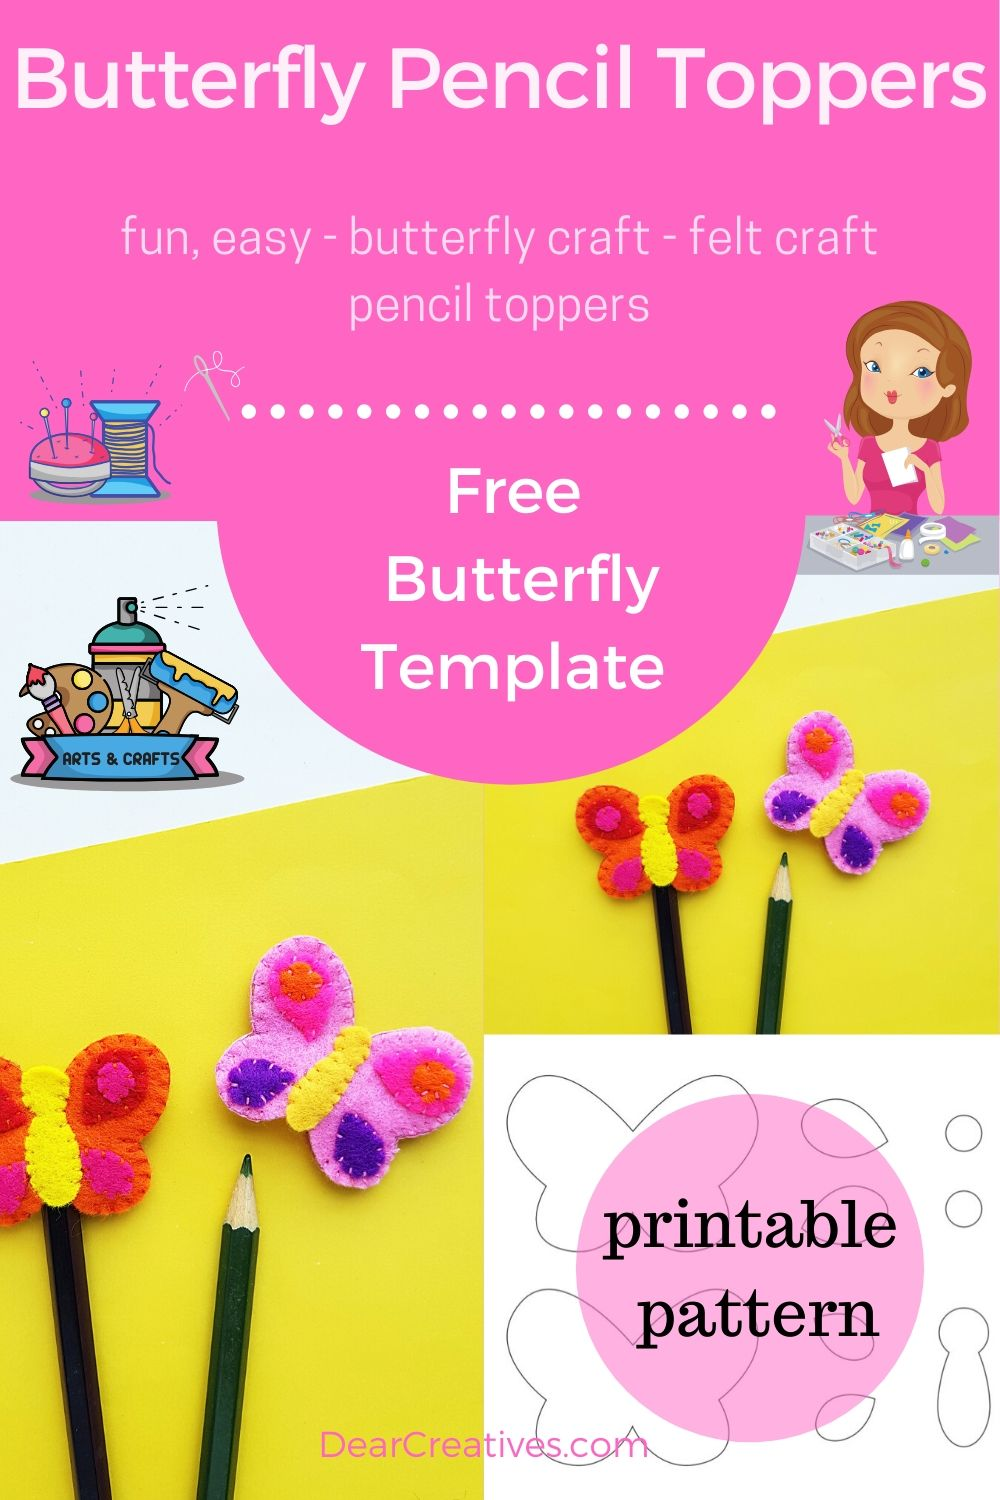 Butterfly Pencil Toppers - This is a fun, easy hand sewing felt craft with free butterfly template. Kids, teens, adults can make this butterfly craft with the instructions and template. DearCreatives.com